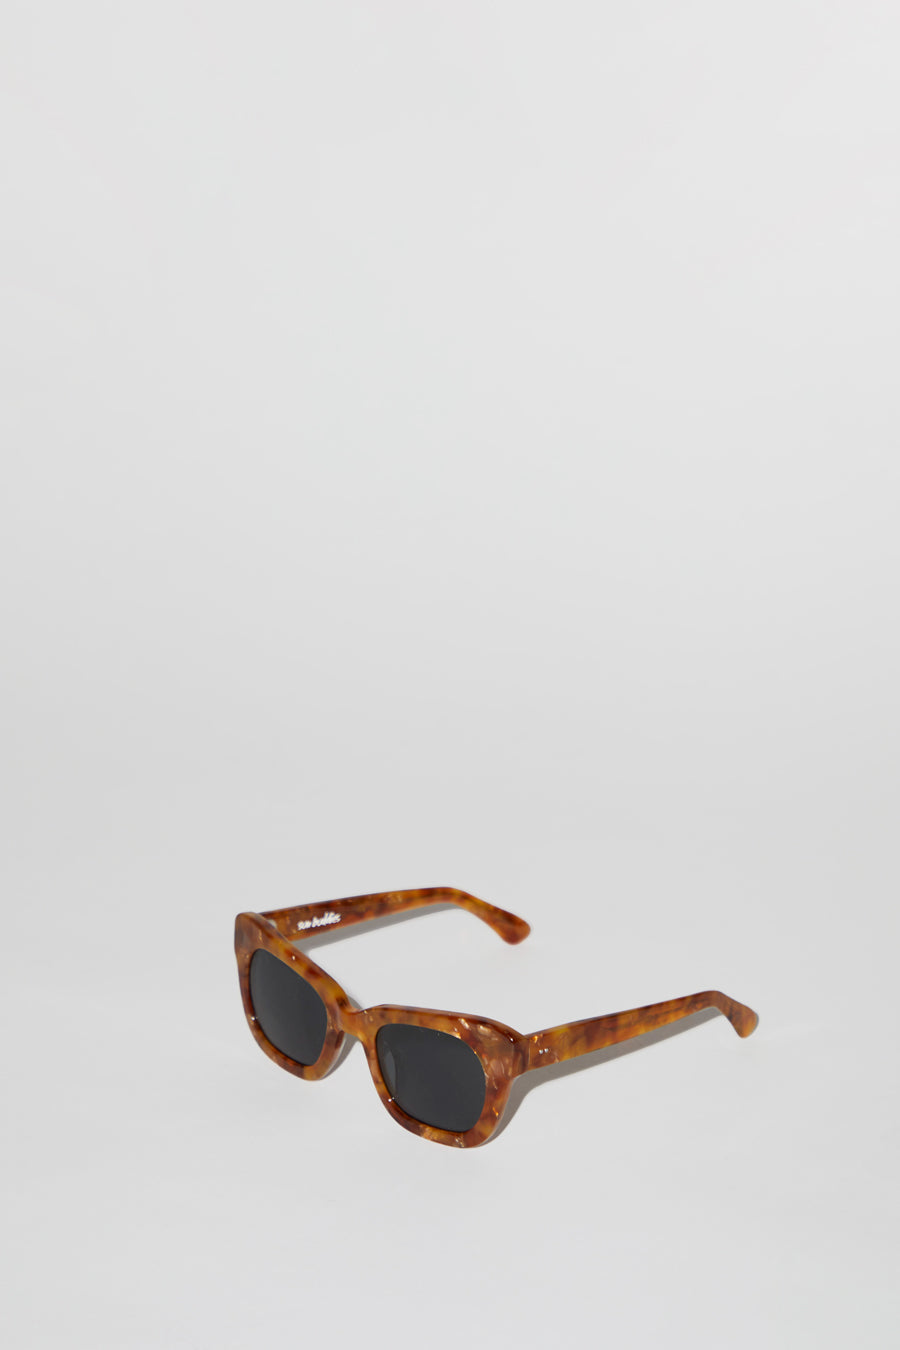 Sun Buddies Ethan Sunglasses in Rocky Road